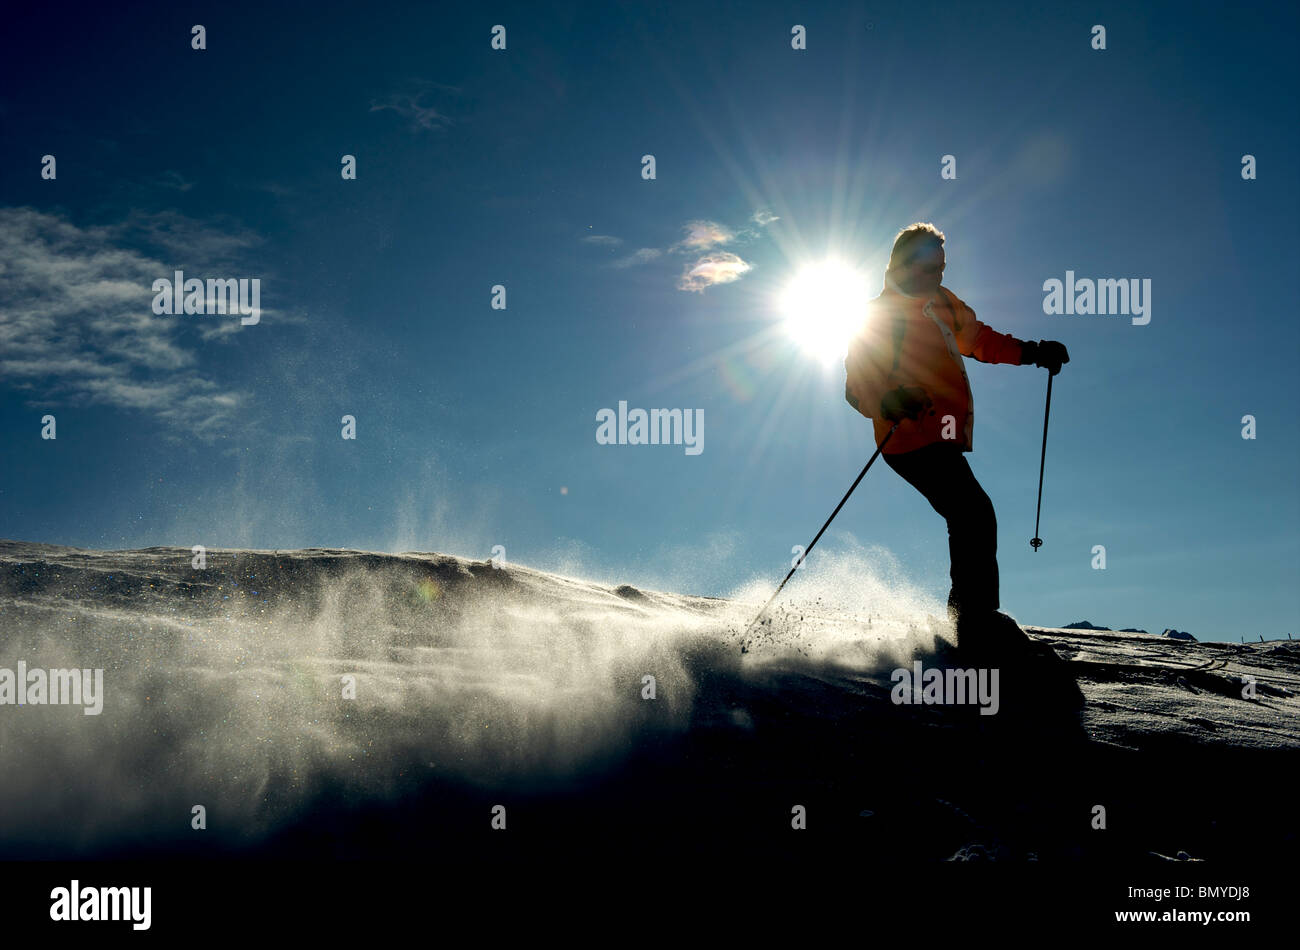 Zillertal, skier in action Stock Photo